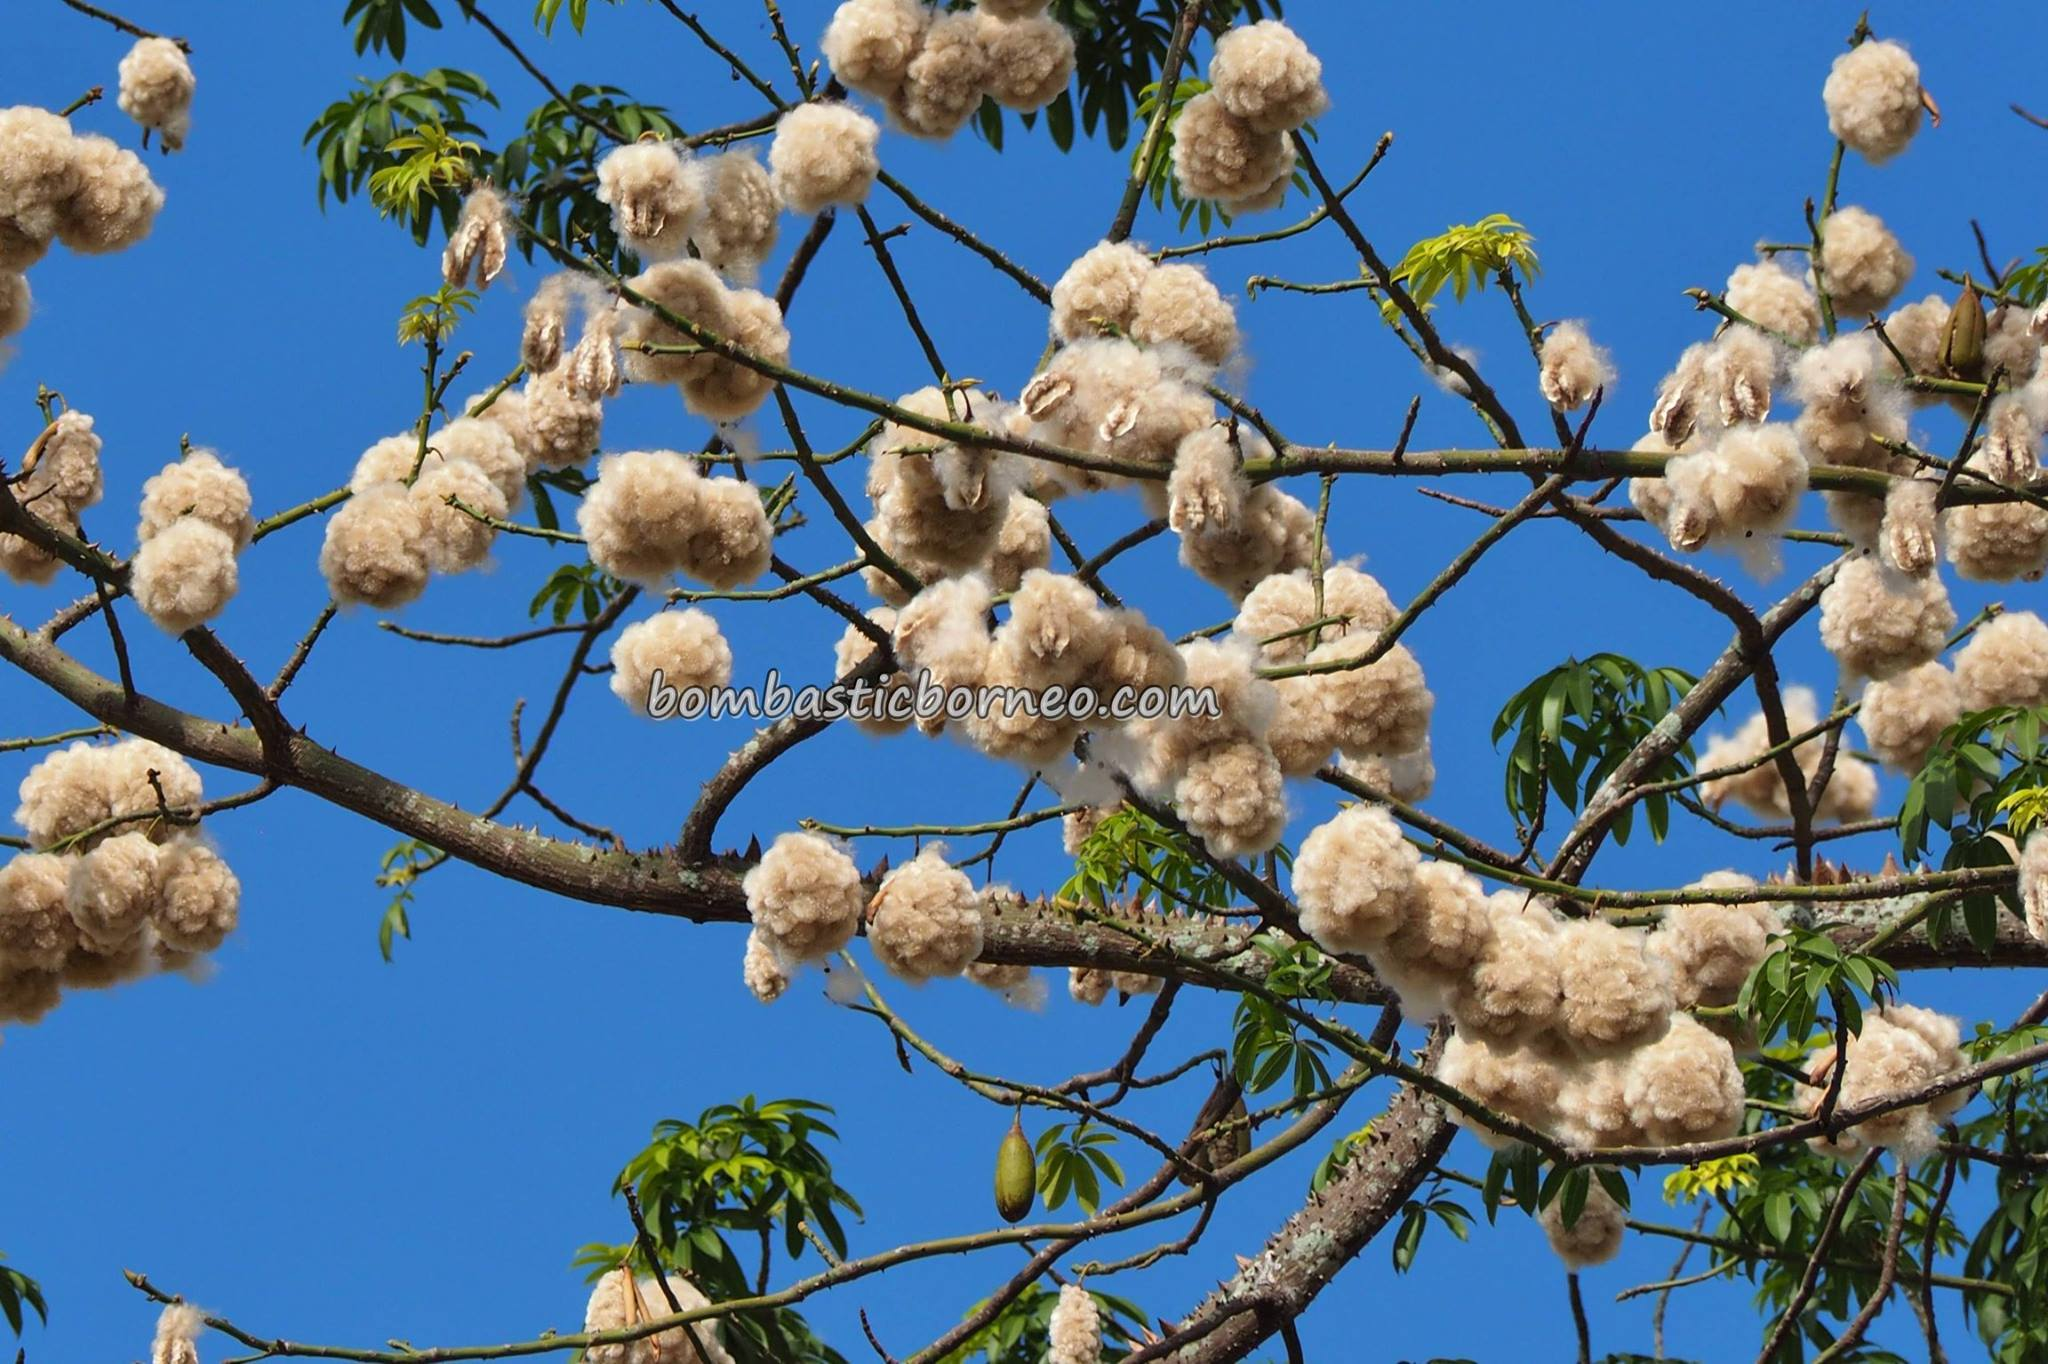 Kapok tree, blooming, flowering, Bombax Ceiba, cotton balls, exotic plant, Malaysia, Borneo, Merdeka Square, nature, outdoors, Tourism, tourist attraction, 沙捞越, 丝棉花树开花